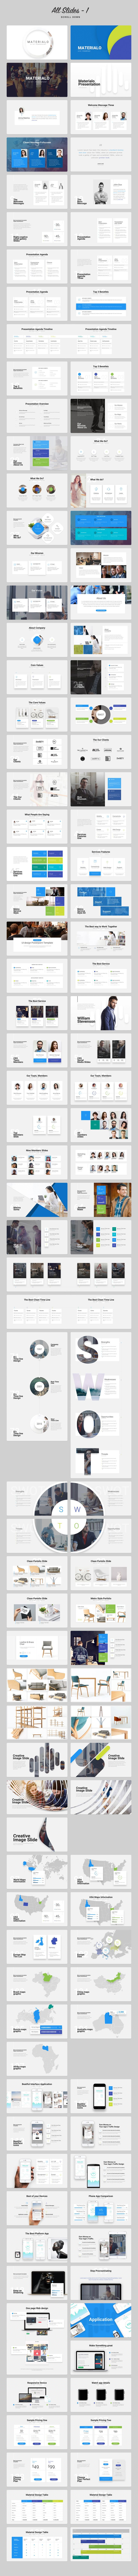 Materialo-Powerpoint UI KIT by dublin_design on @creativemarket